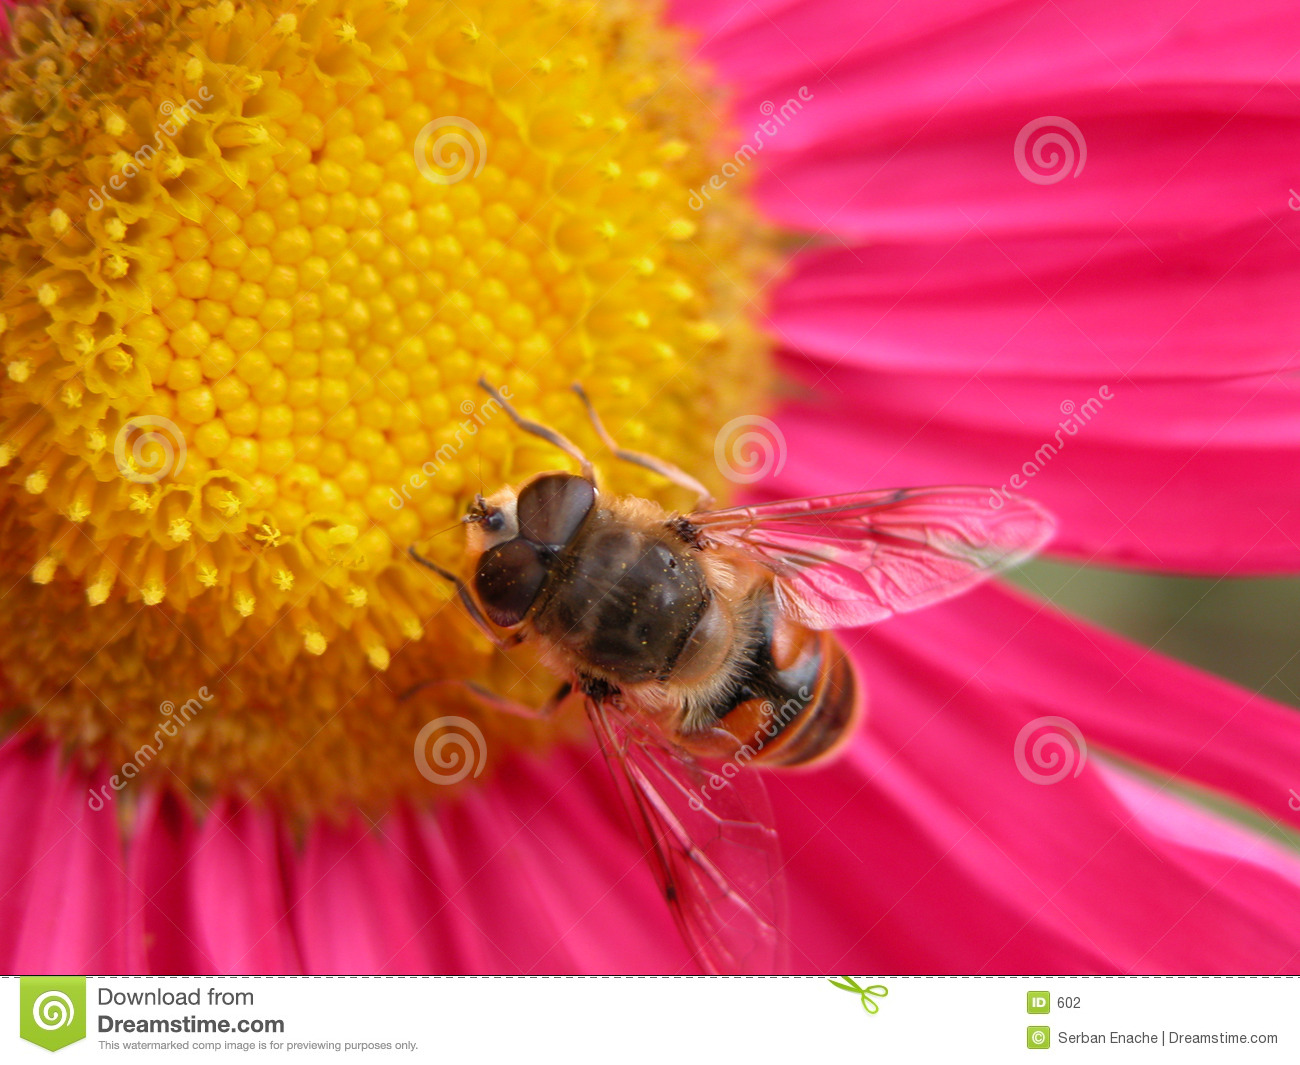 Bee on a pink flower 1